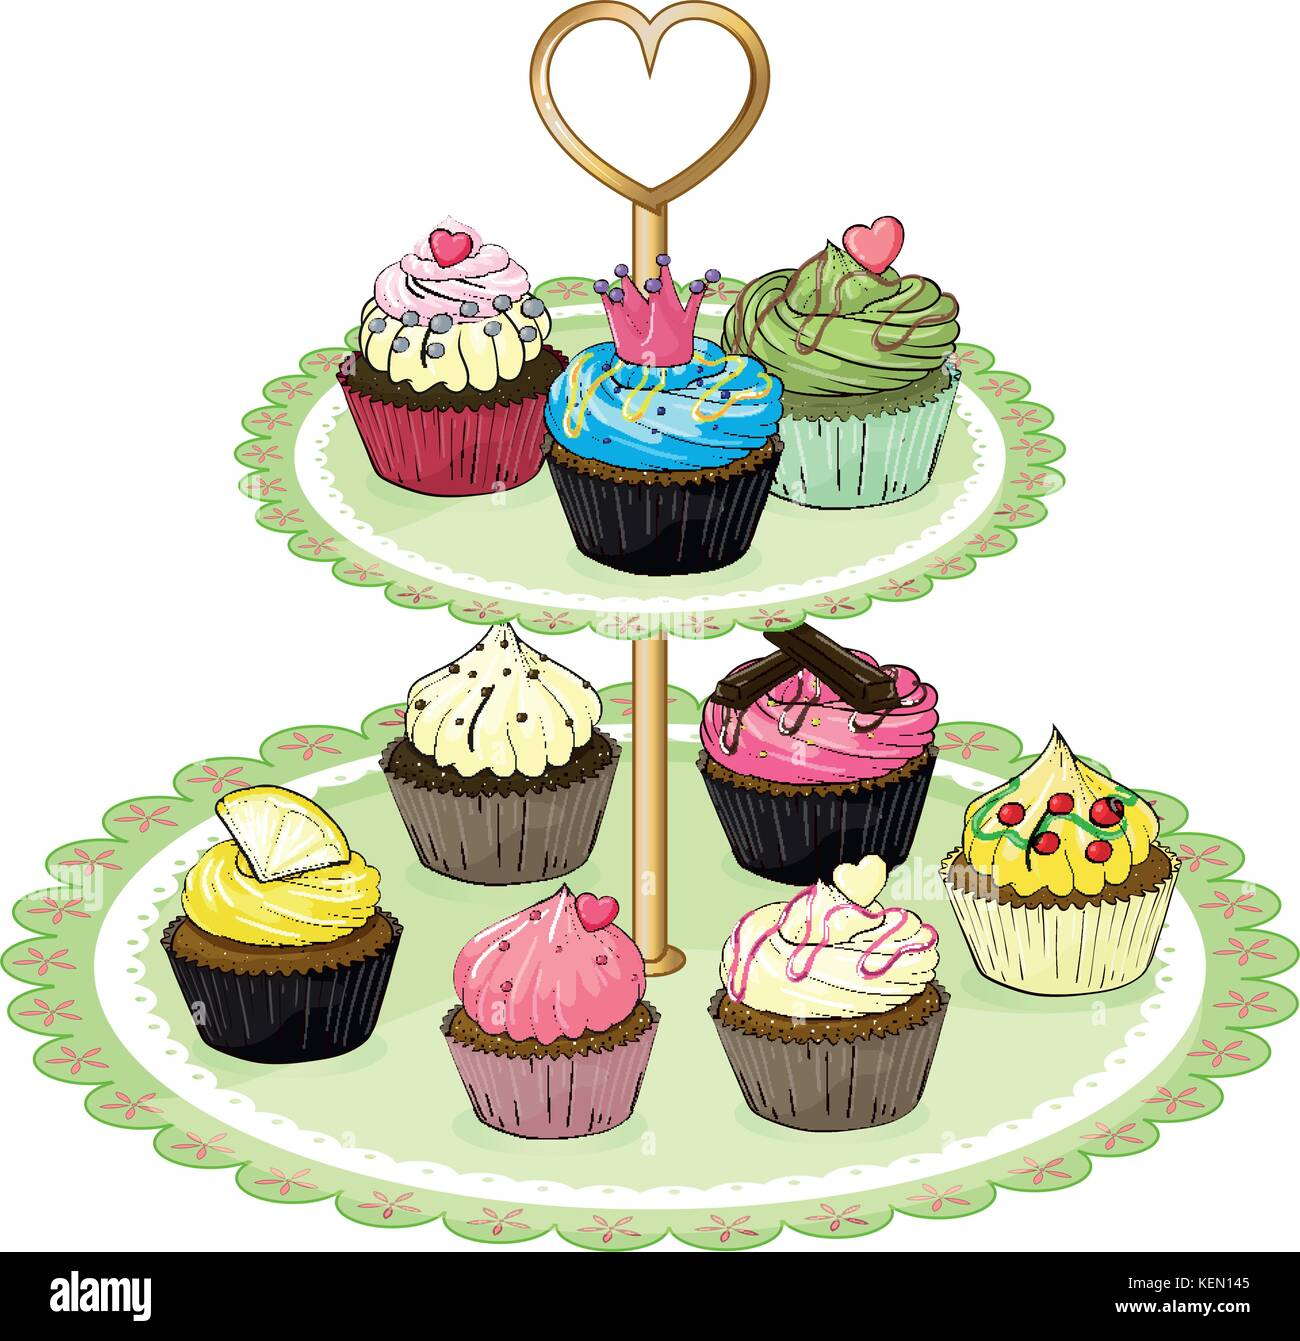 White Background Without Cupcake Wiring Diagrams Flickerledcircuit Illustration Of A Tray With Cupcakes On Rh Alamy Com Birthday